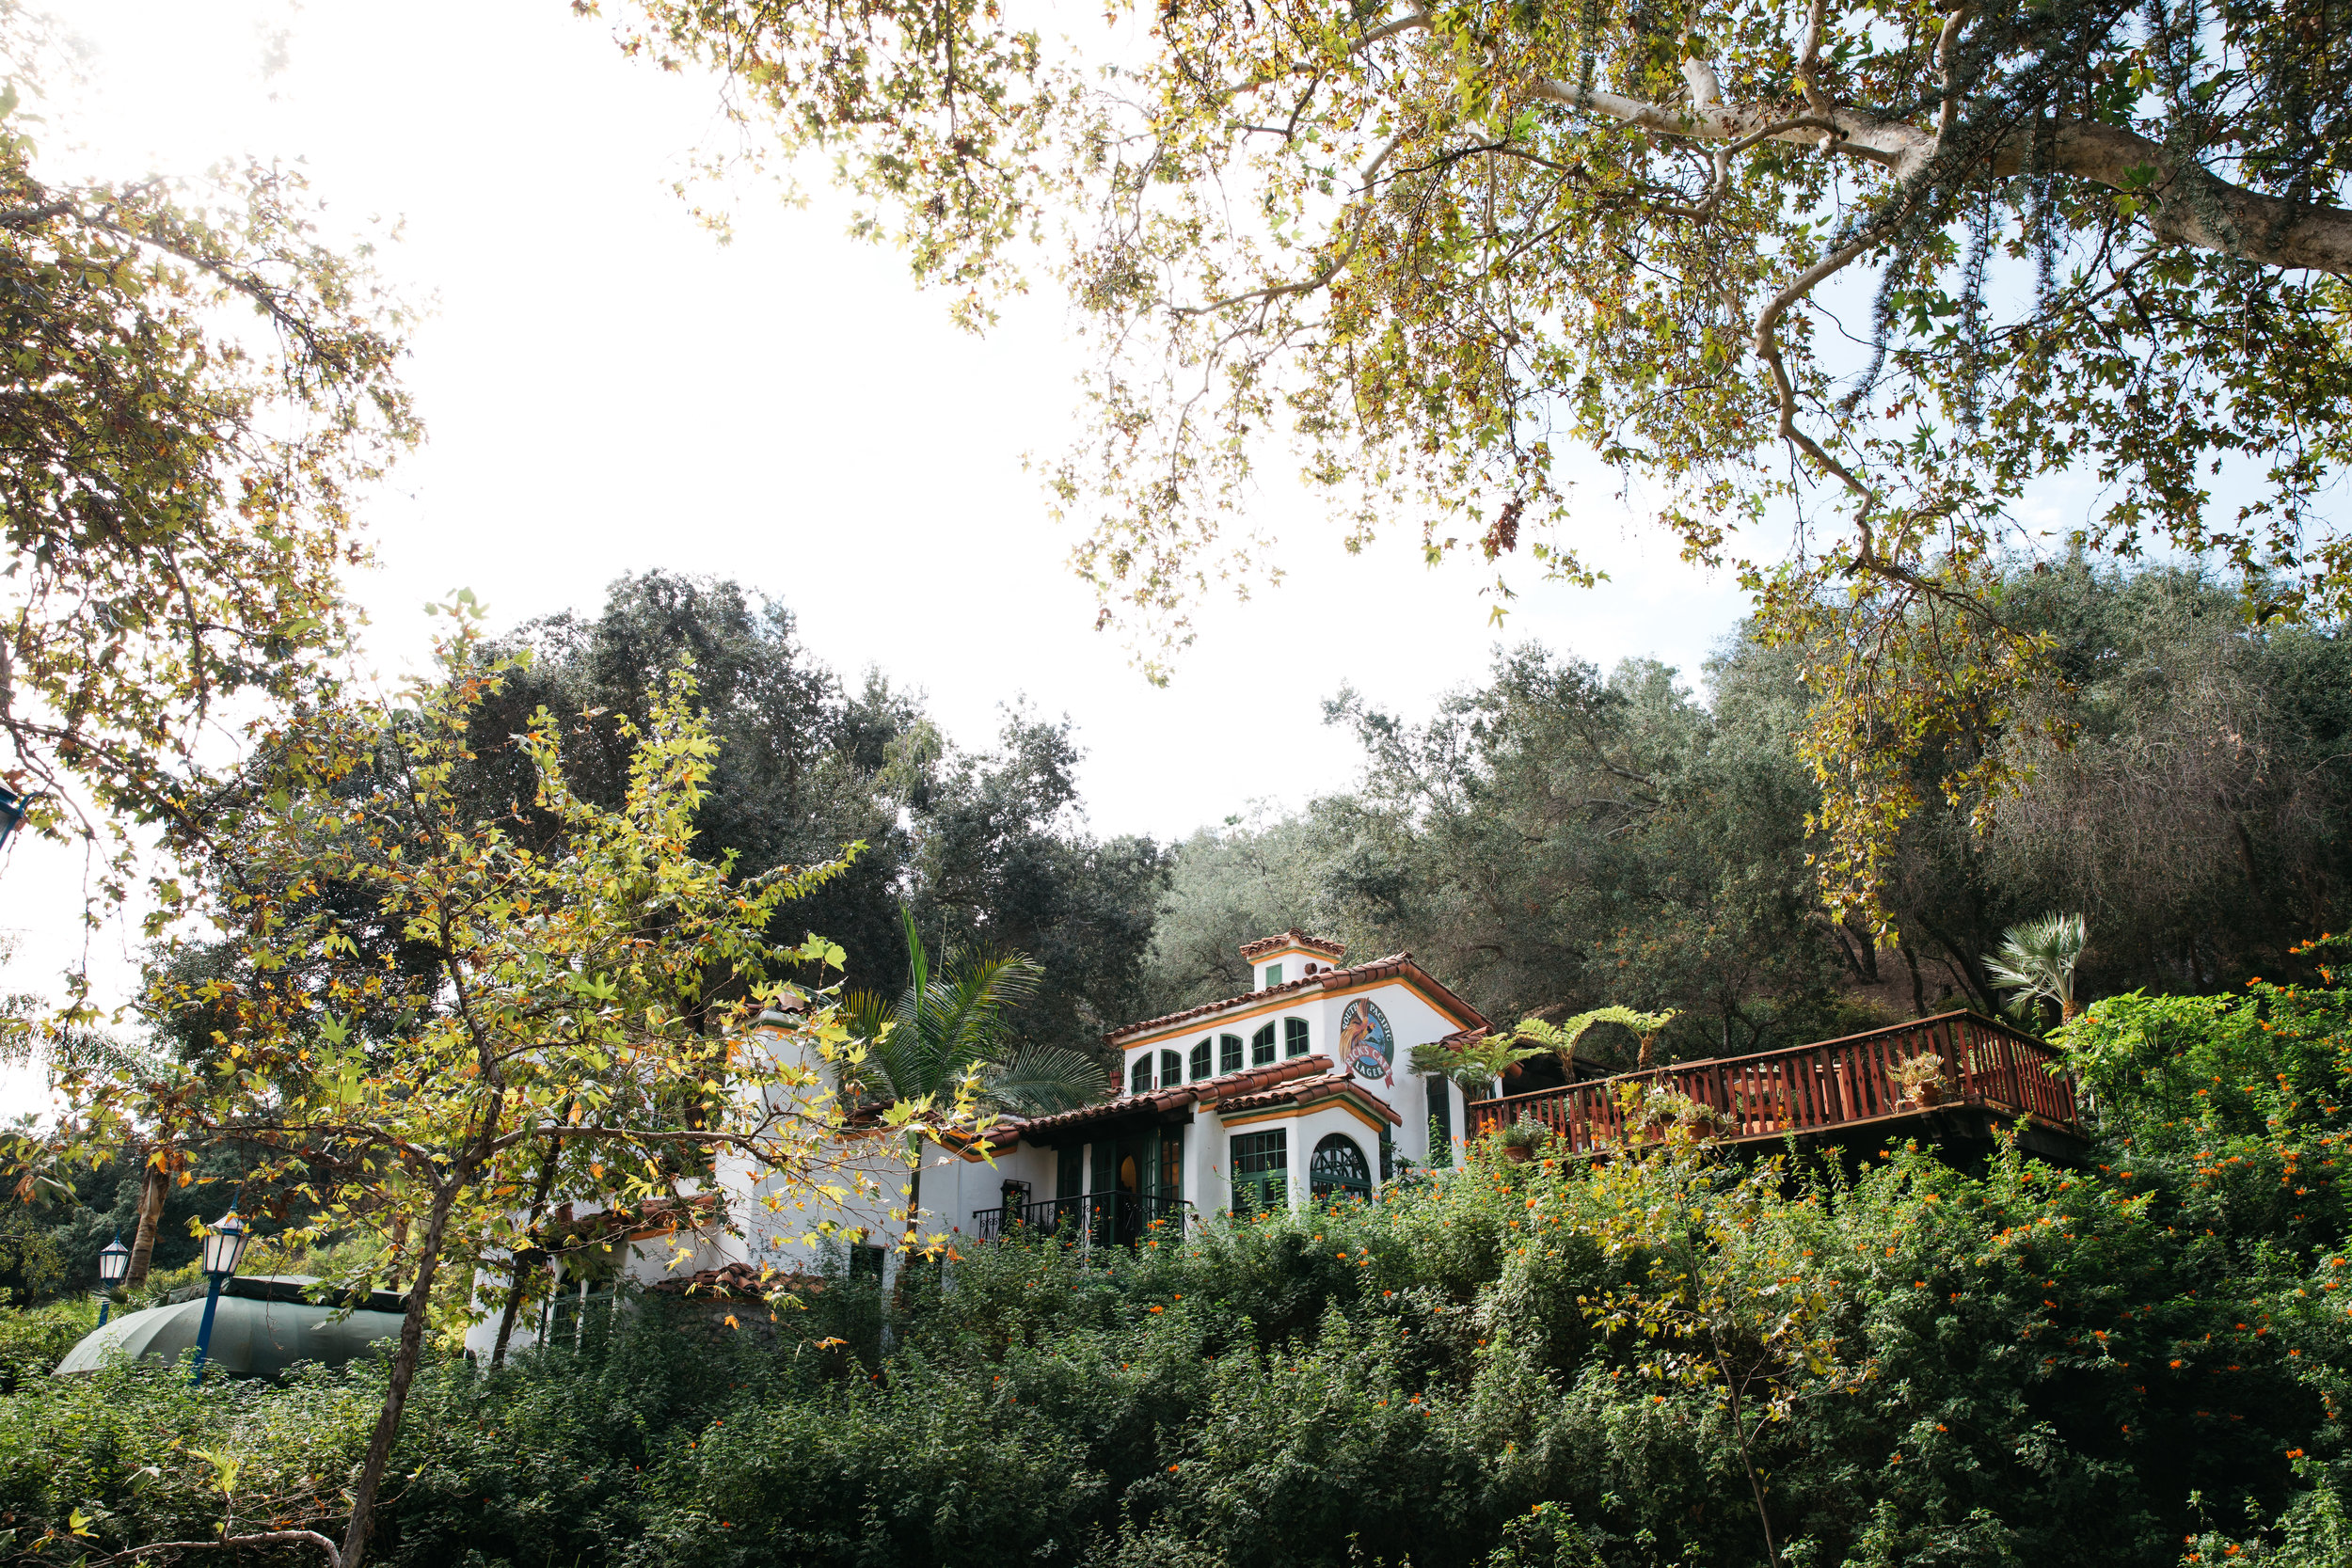 rancho-las-lomas-wedding-planner-best-wedding-planner-in-southern-california7.jpg